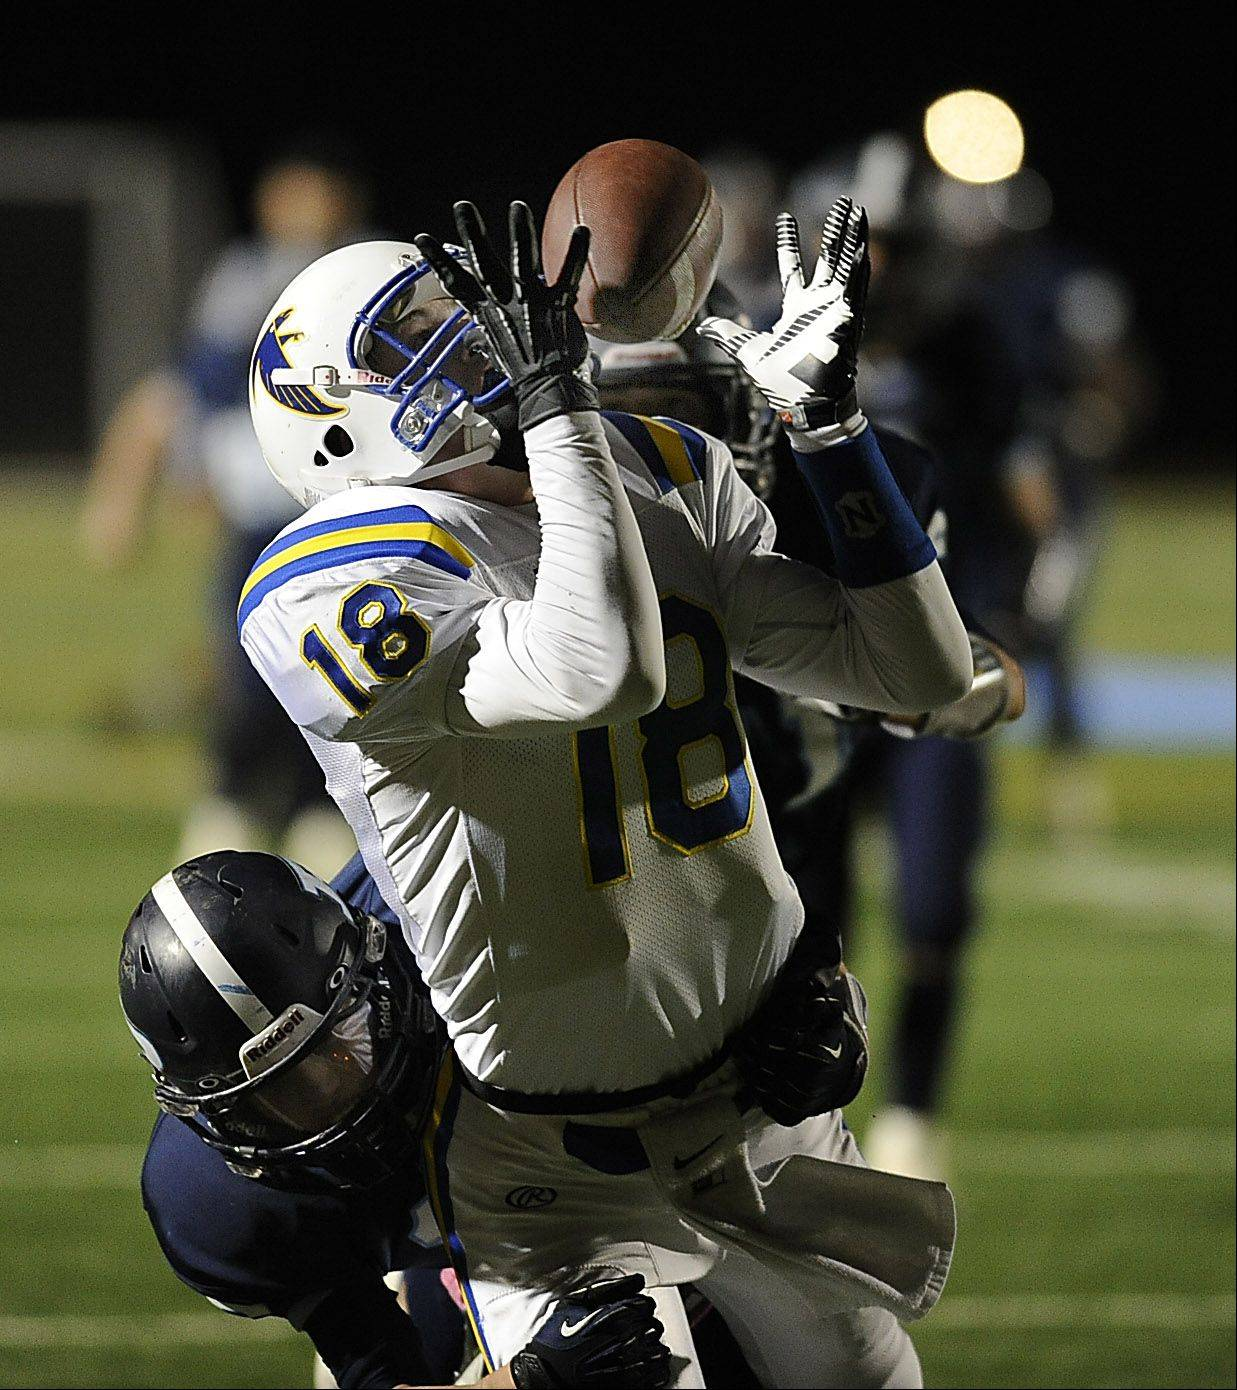 Prospect's defensive player Devin O'Hara applies pressure on Wheaton North's Clayton Thorson in the second quarter.